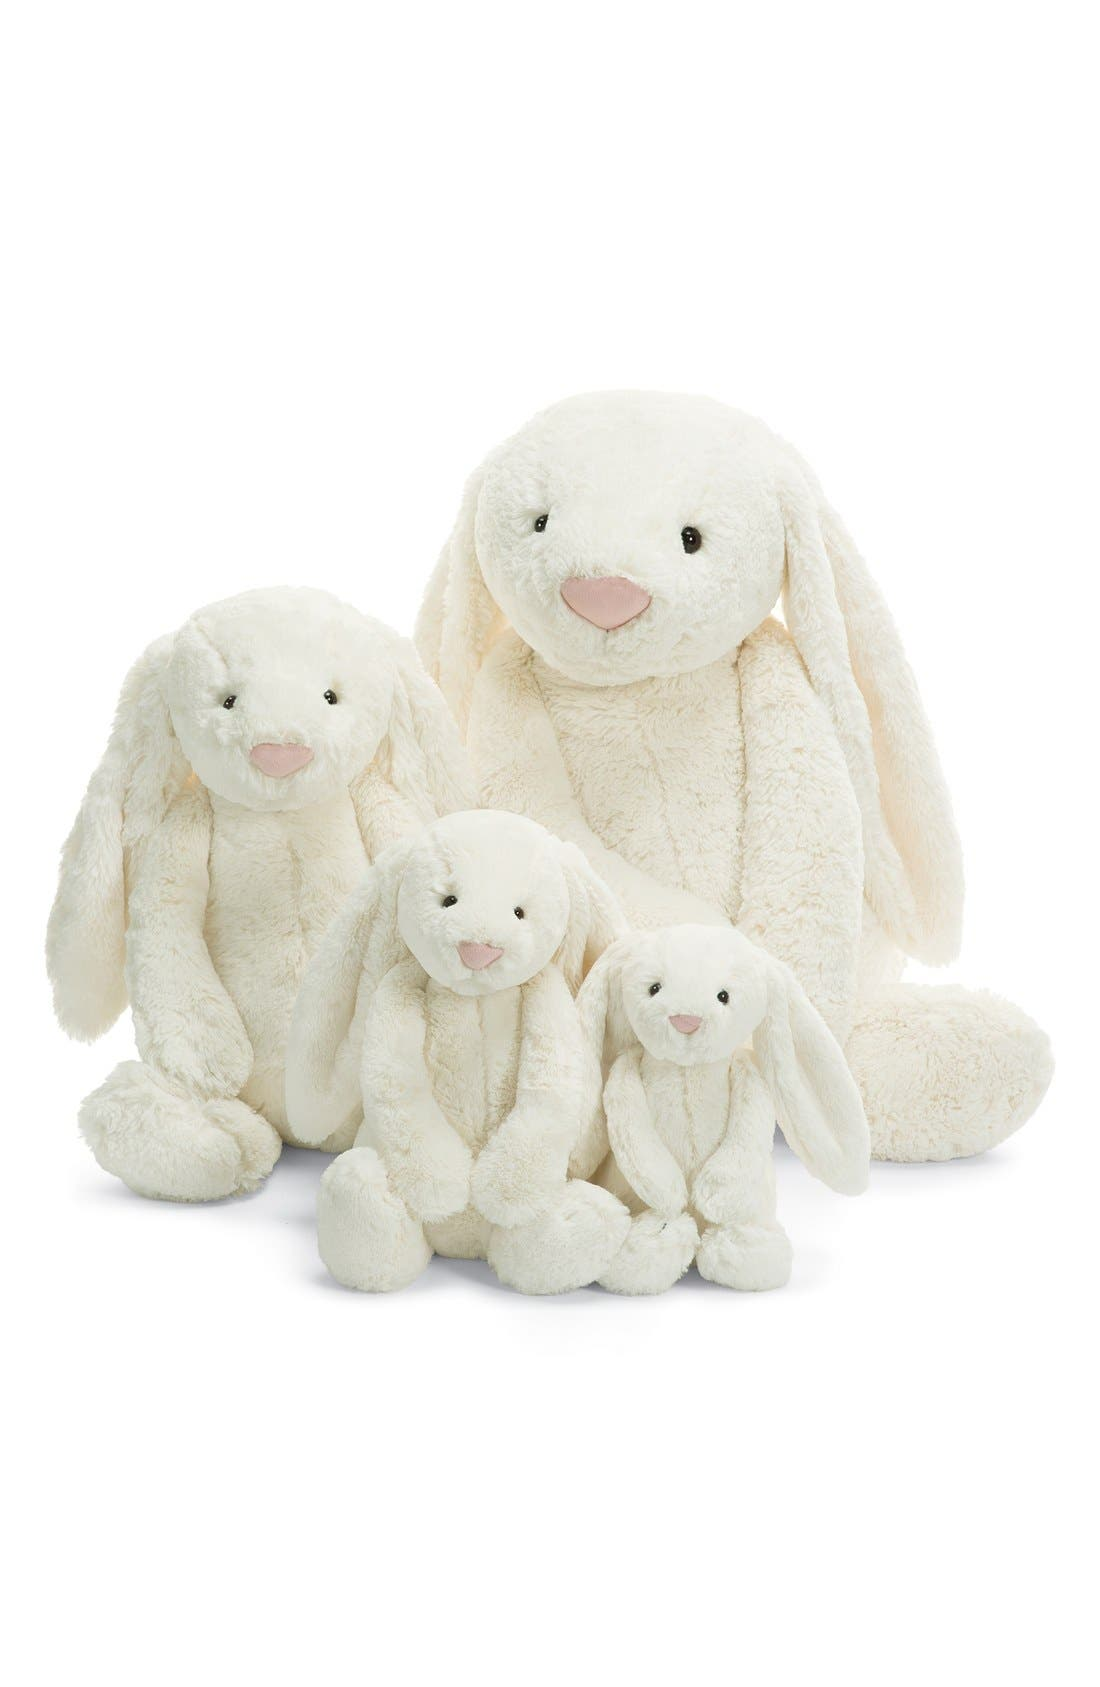 'Large Bashful Bunny' Stuffed Animal,                             Alternate thumbnail 2, color,                             Cream